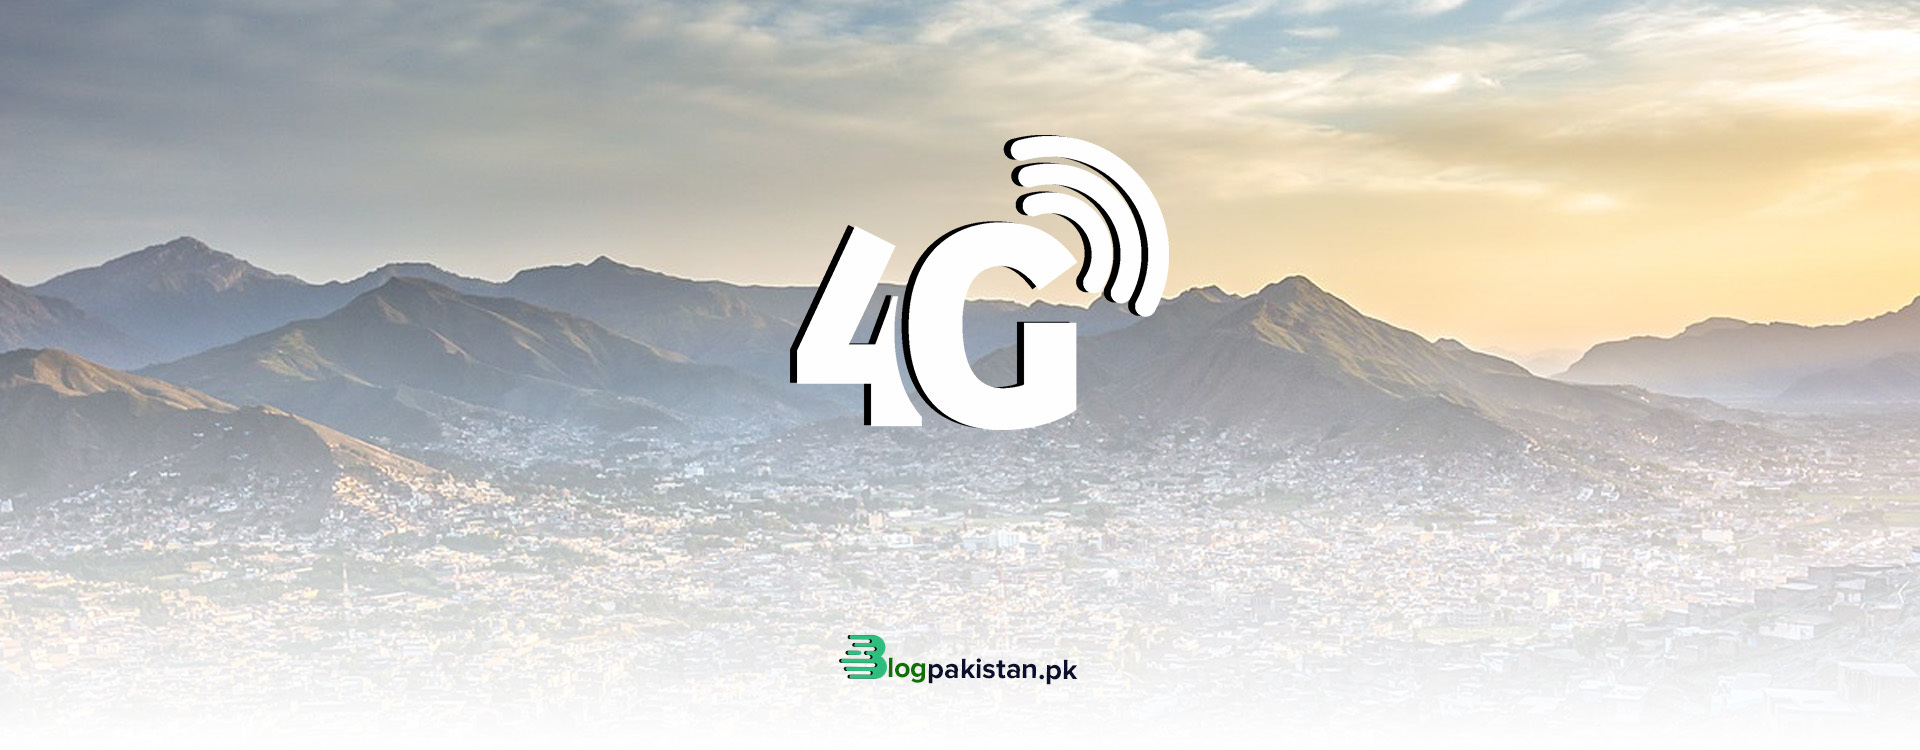 Swat Region Set To Receive 4G Services In The Near Future